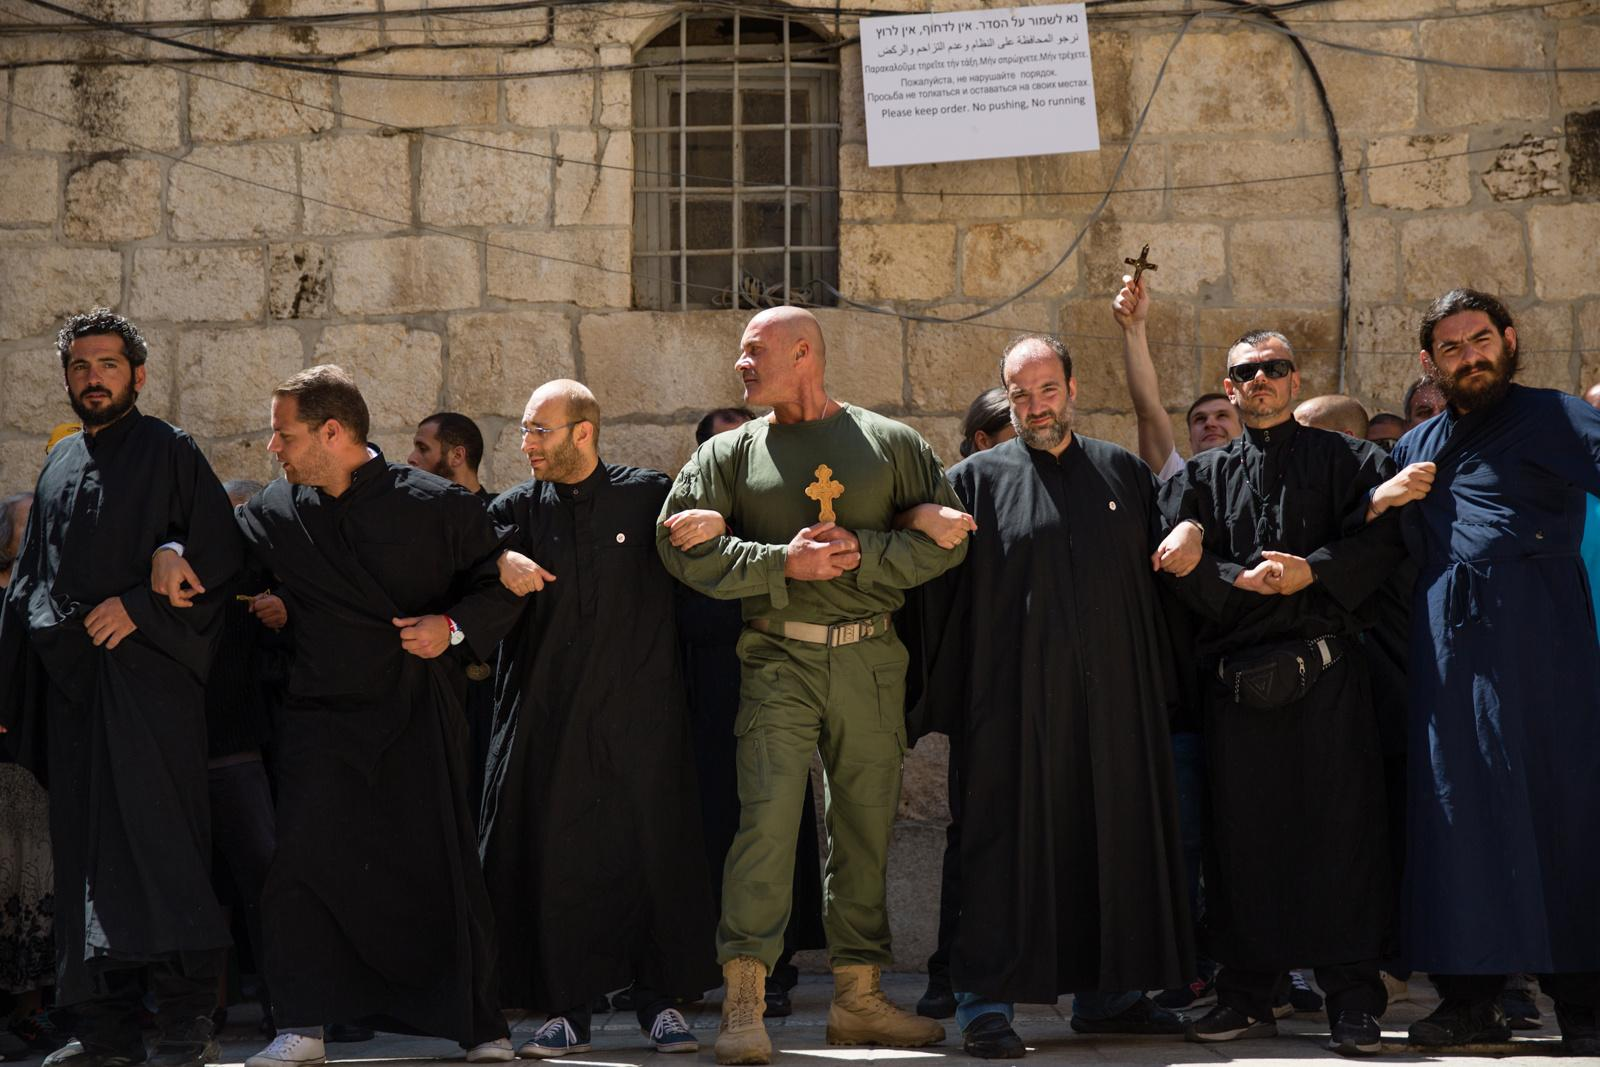 JERUSALEM, ISRAEL - APRIL 29, 2016: Christian worshippers take part in a Good Friday procession on the Via Dolorsa in Jerusalem's Old City on April 29, 2016. Via Dolorosa is held to be the path that Jesus walked on the way to his crucifixion. It is marked by nine of the fourteen Stations of the Cross. The last five stations are inside the Church of the Holy Sepulchre.